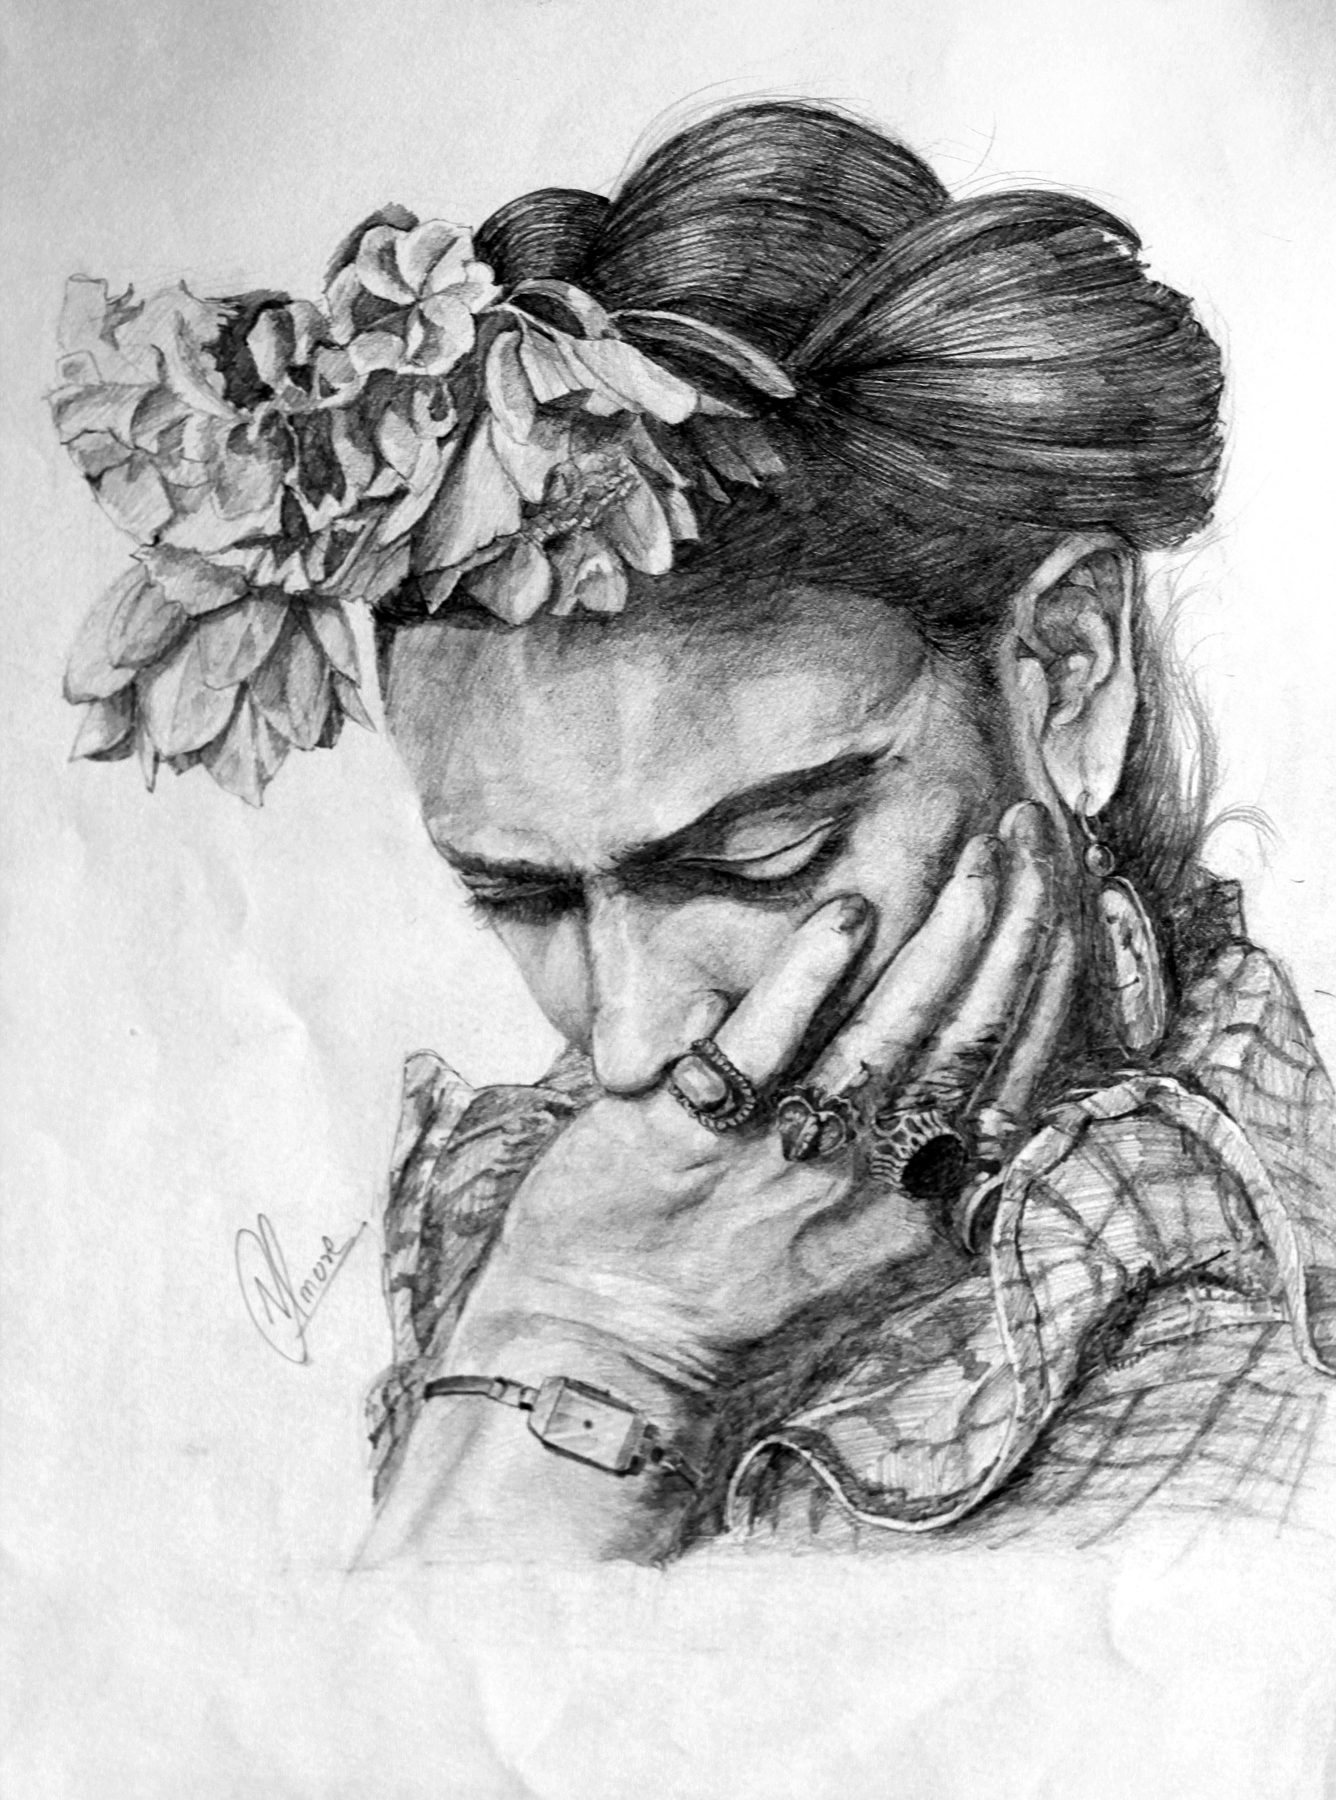 Woman Black and White Sketch by Nitish More